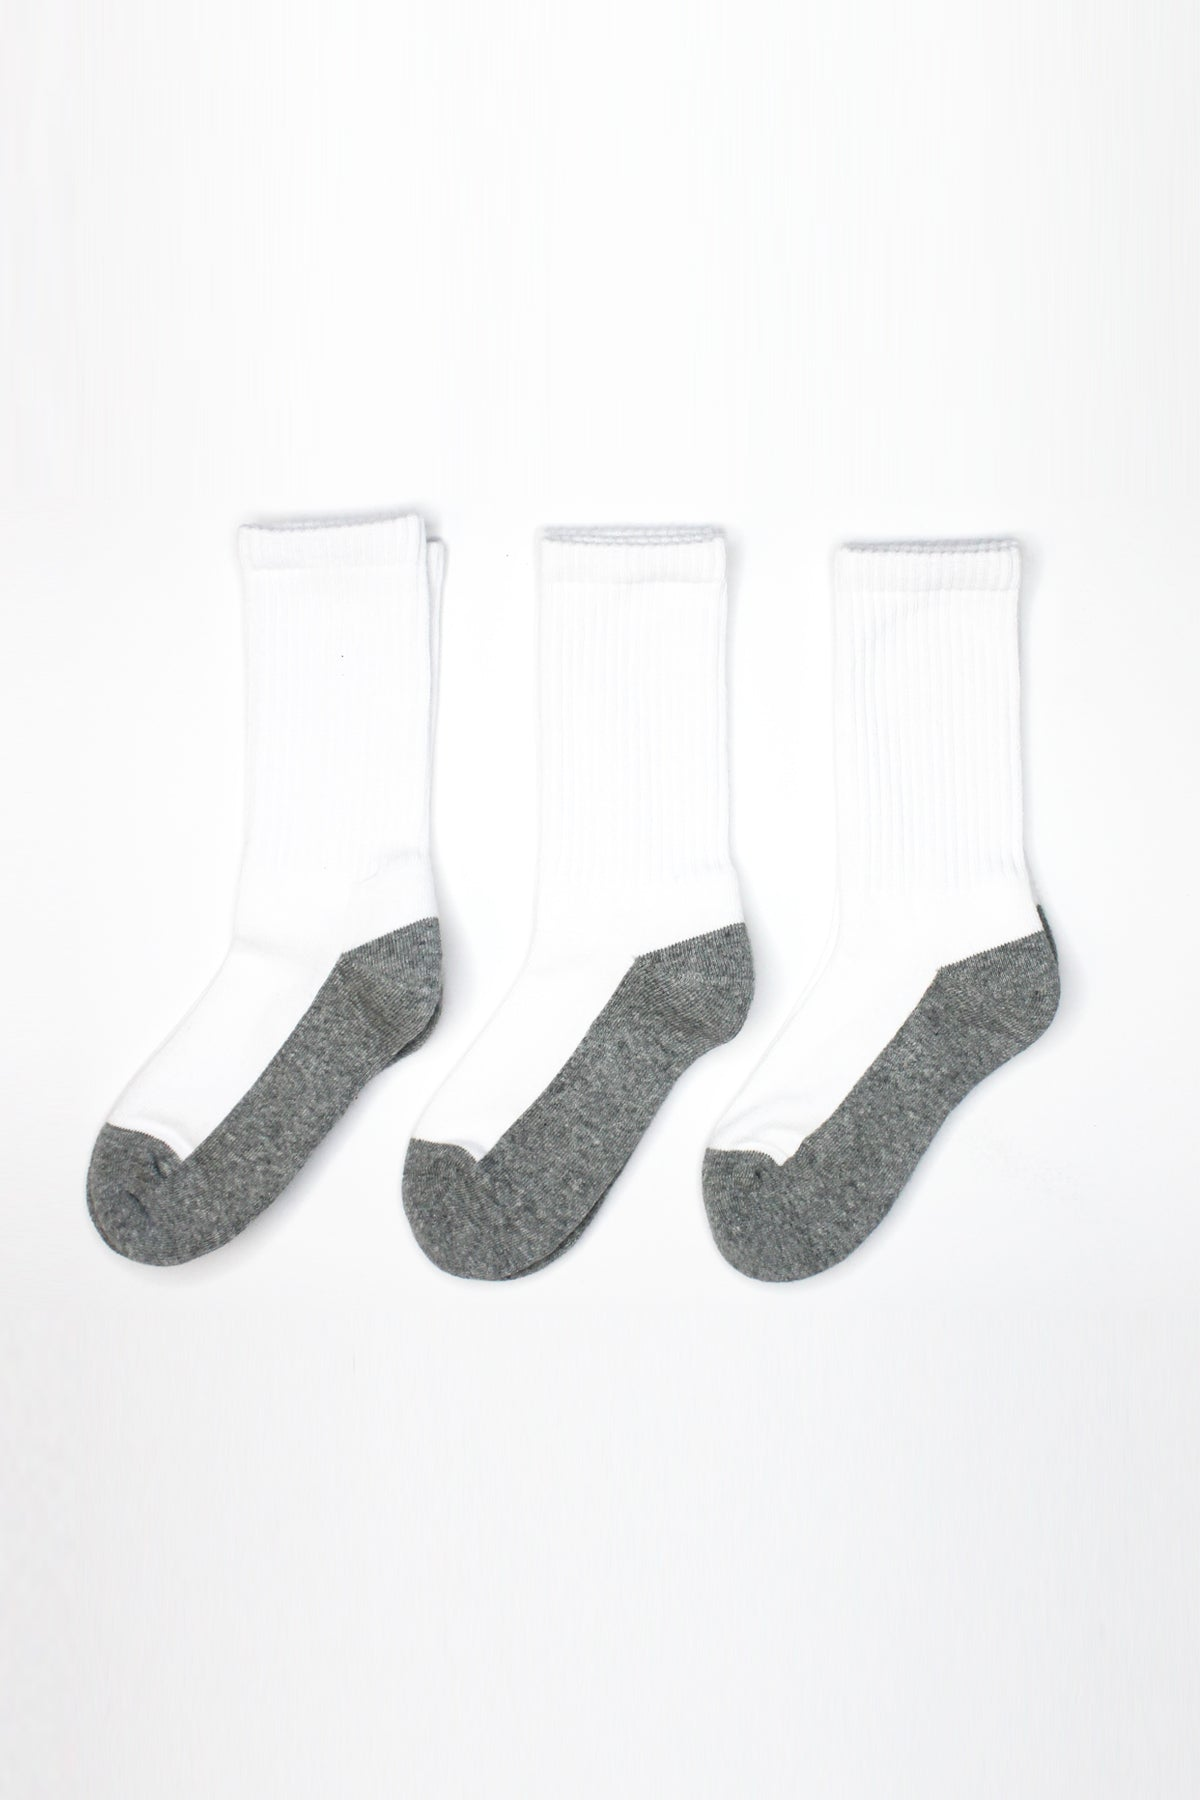 Jefferies Socks Athletic Sport Crew Kids Socks 3-Pack - White